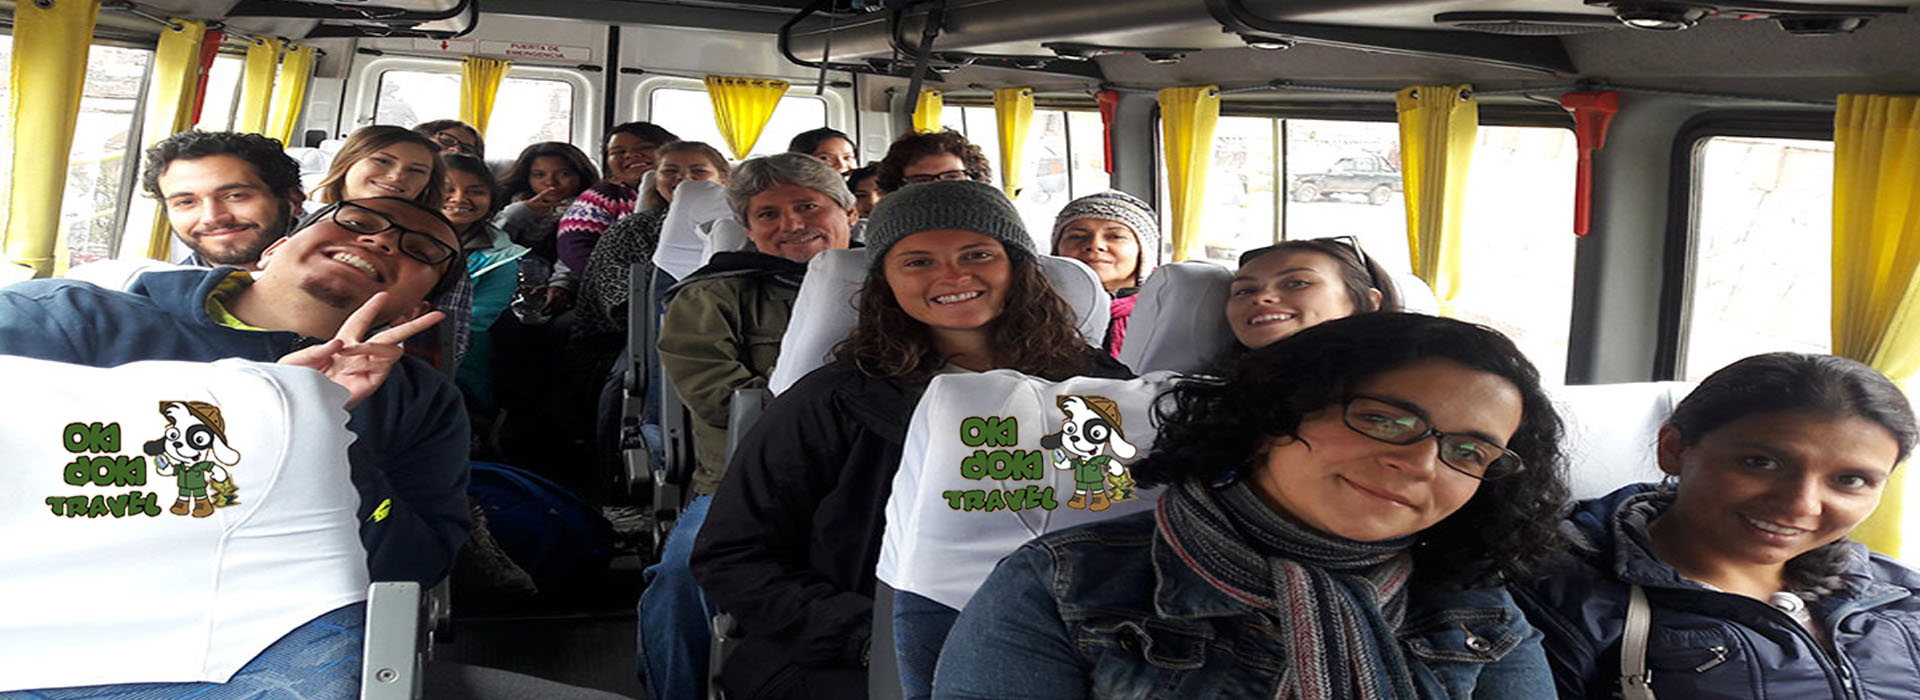 Salkantay Trek to Machu Picchu 4 days return by bus last day